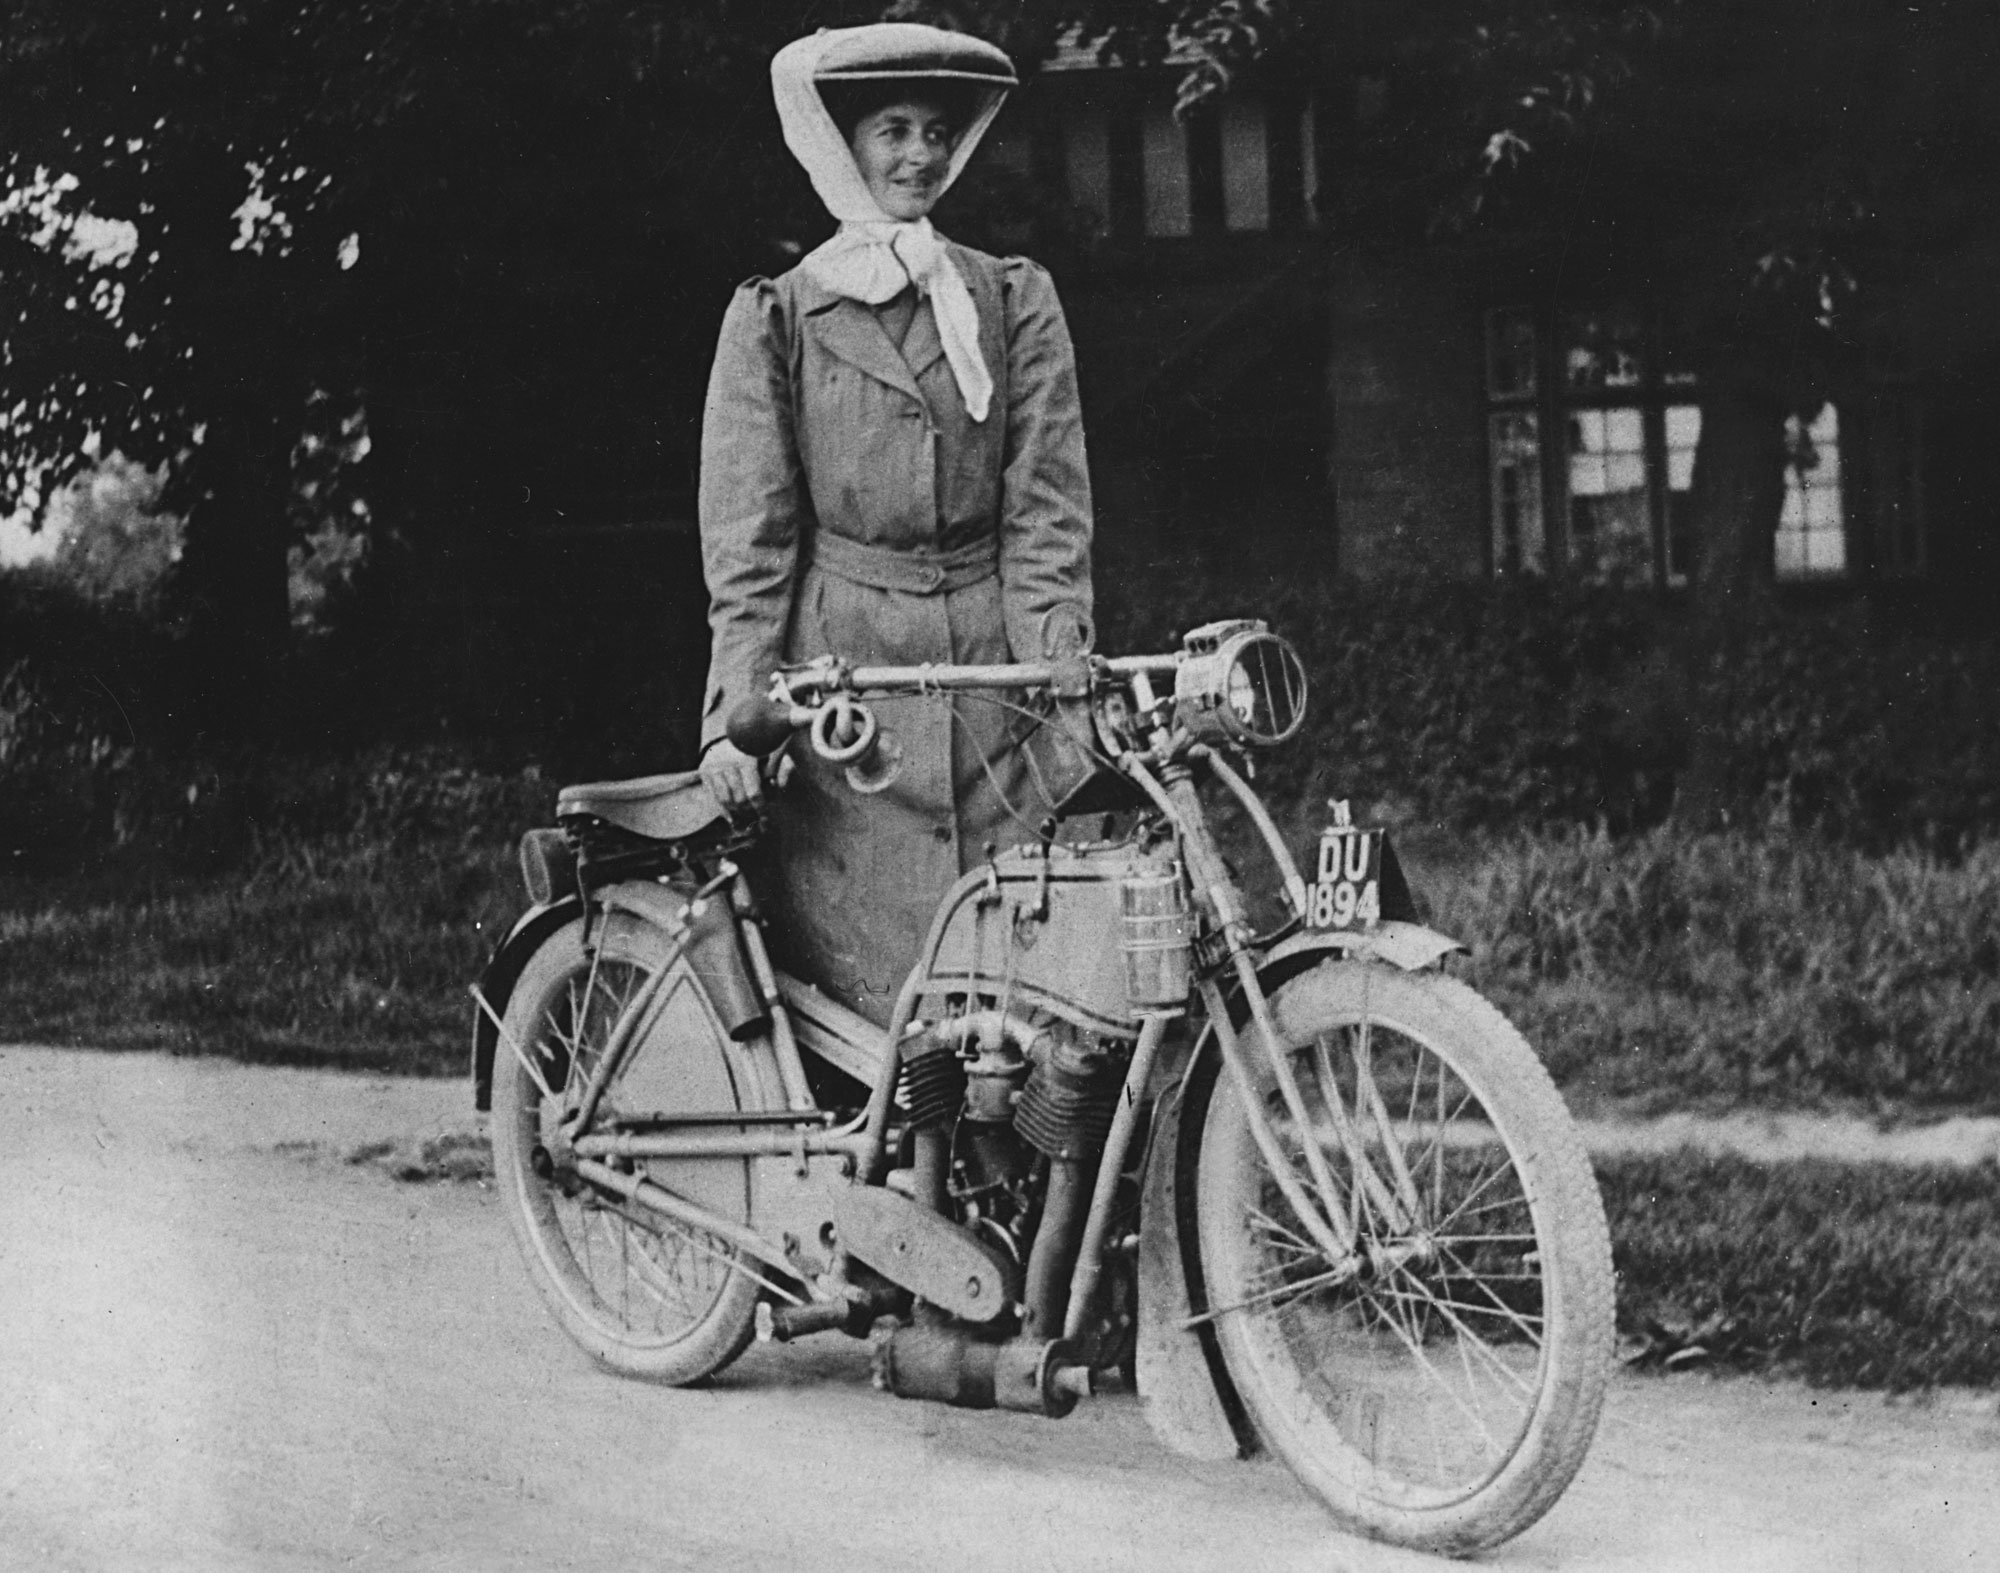 Muriel Hind dressed in cycling attire with Rex Motorcycle